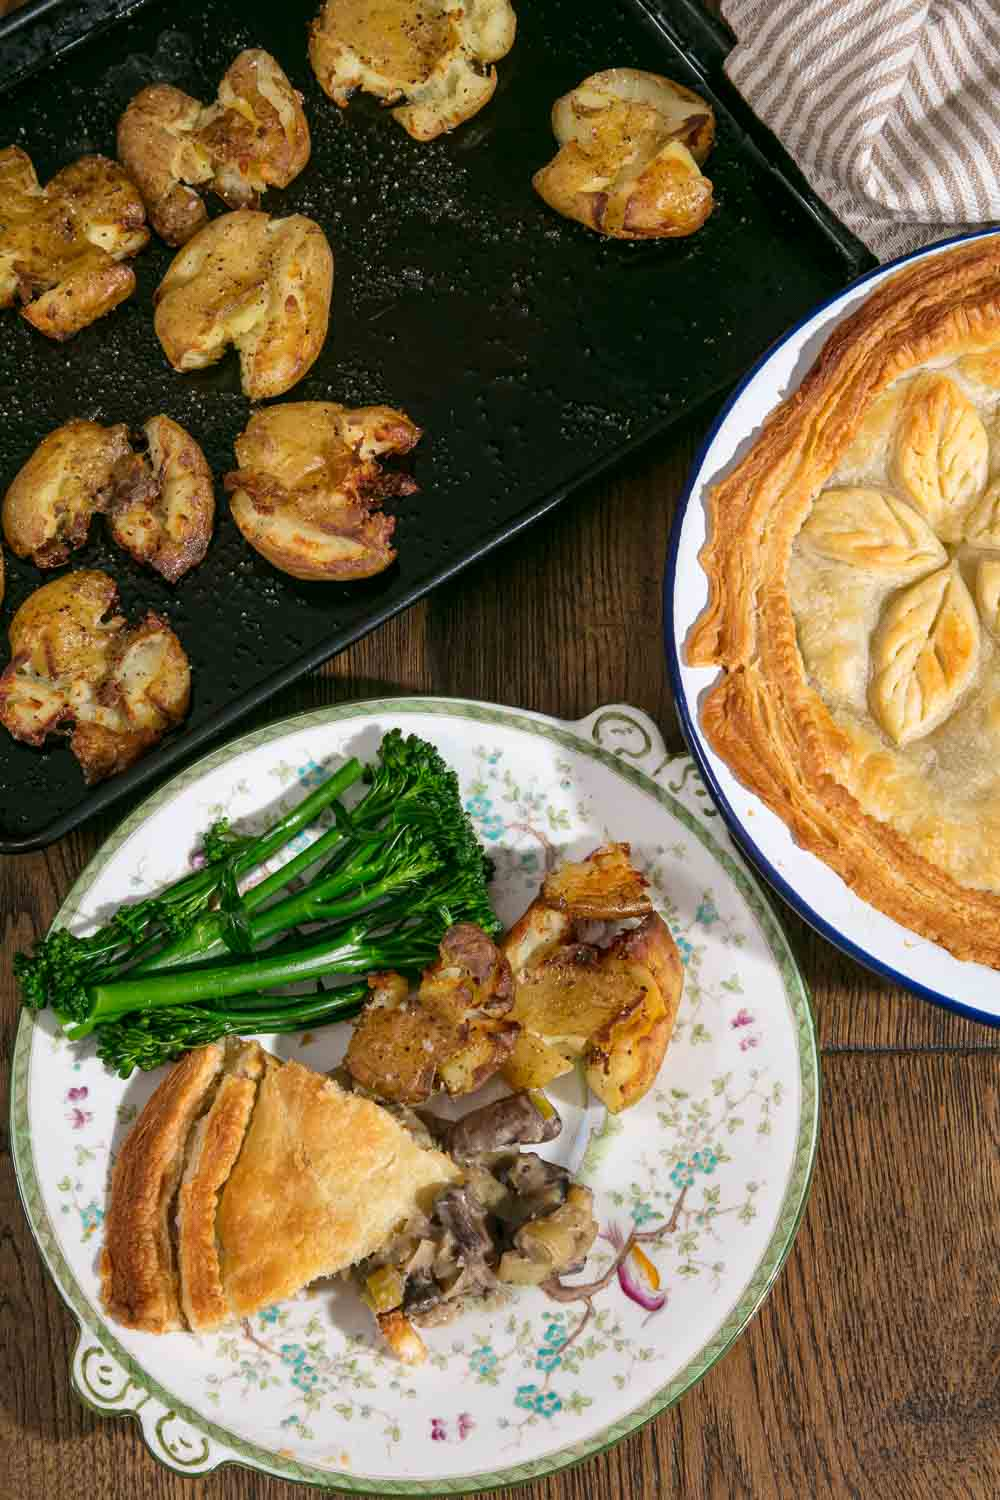 A slice of leek and mushroom pie on a plate with roasted potatoes and broccoli.